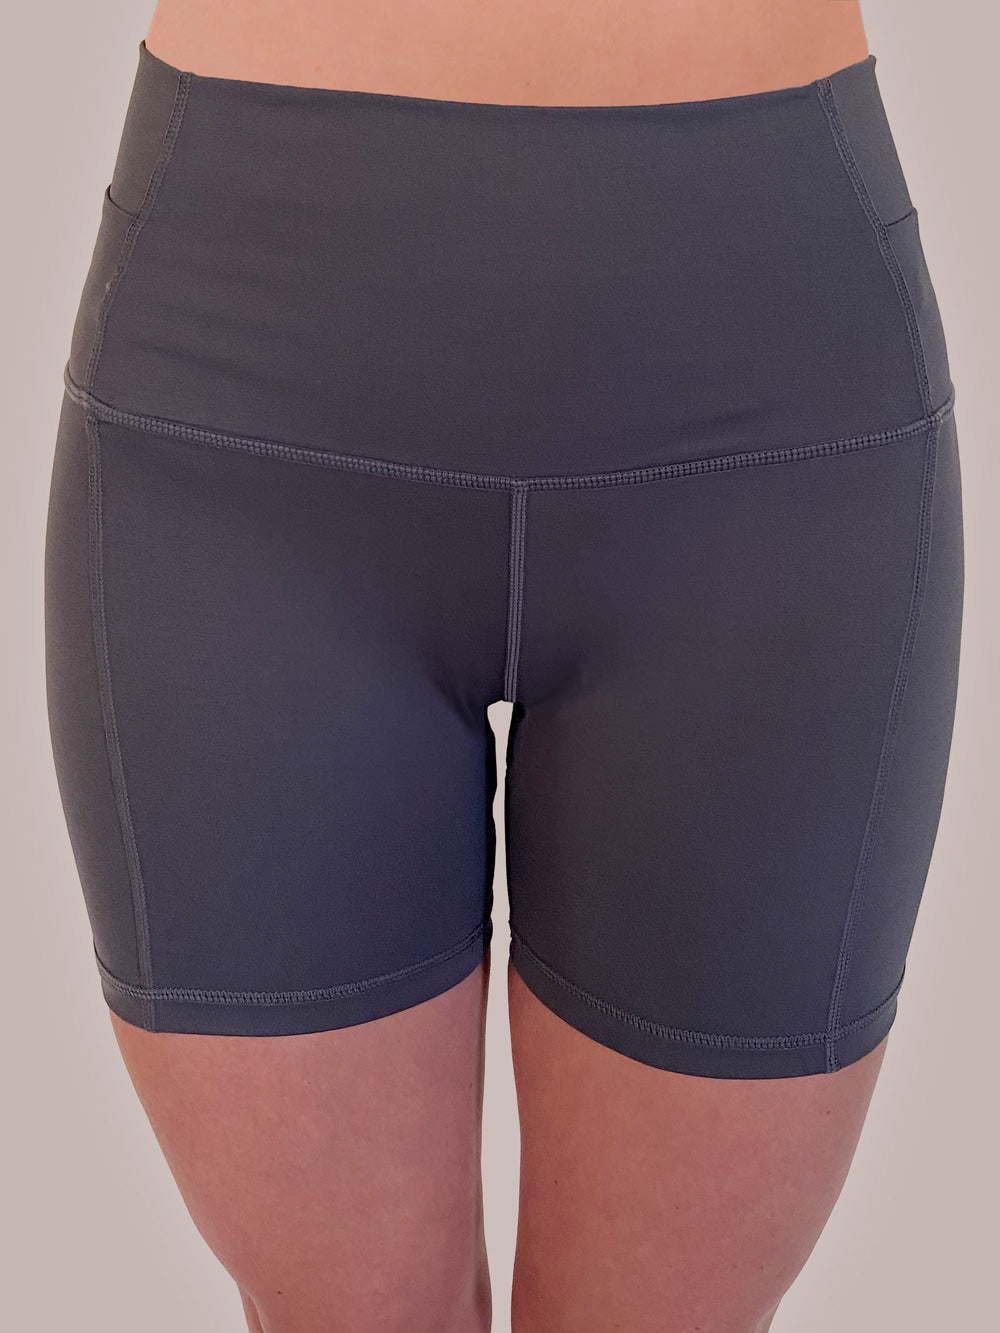 Koala Grey Yoga / Bike Shorts